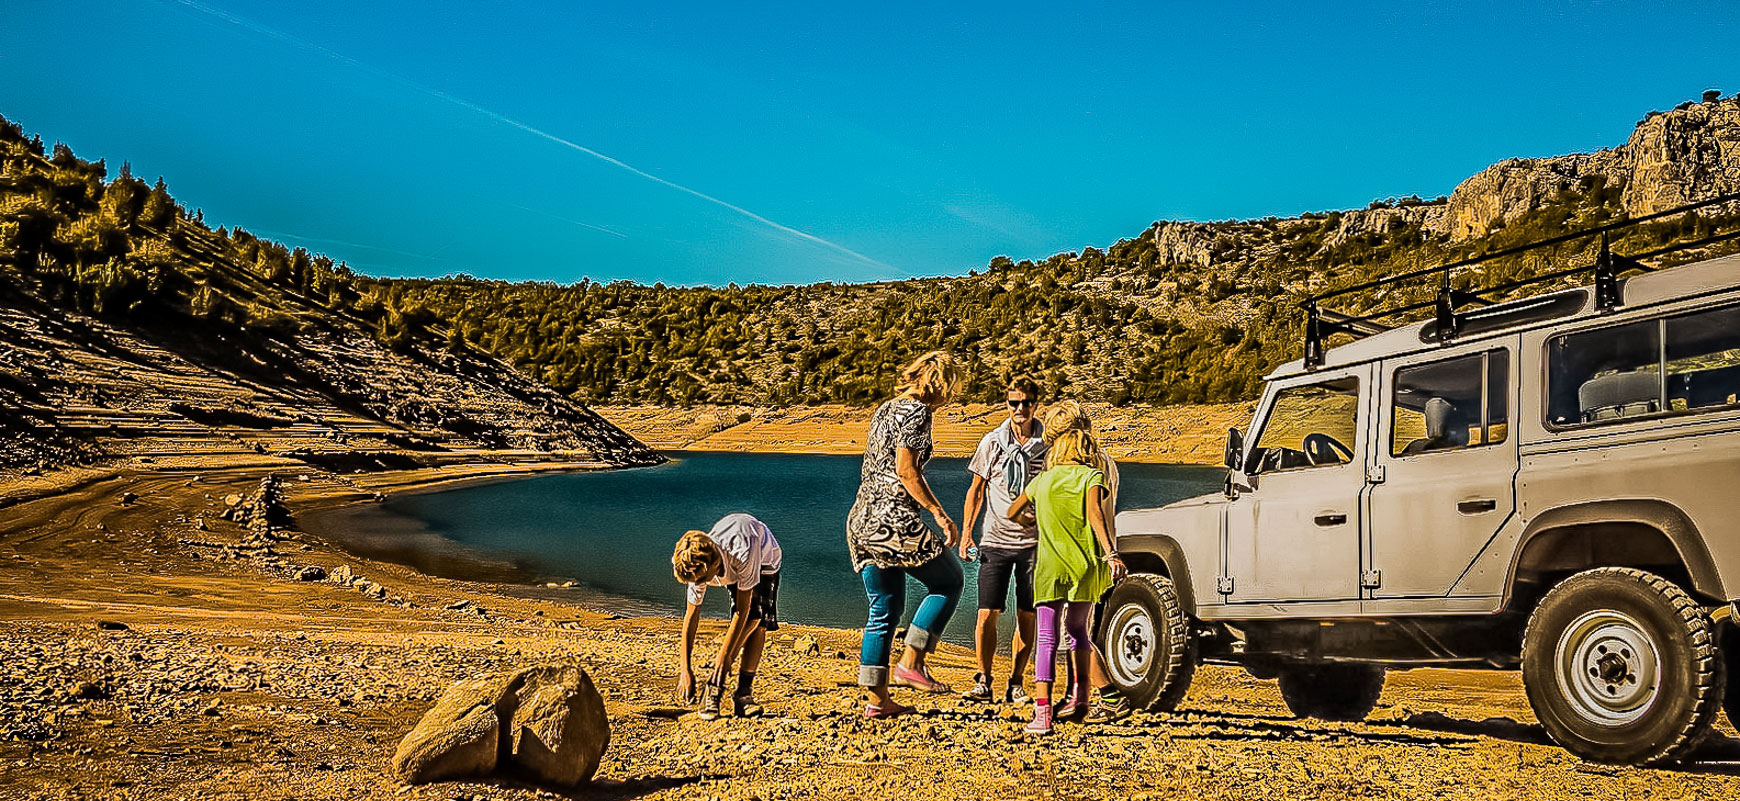 Home-page-Jeep-safari-Dalmatinska-zagora-